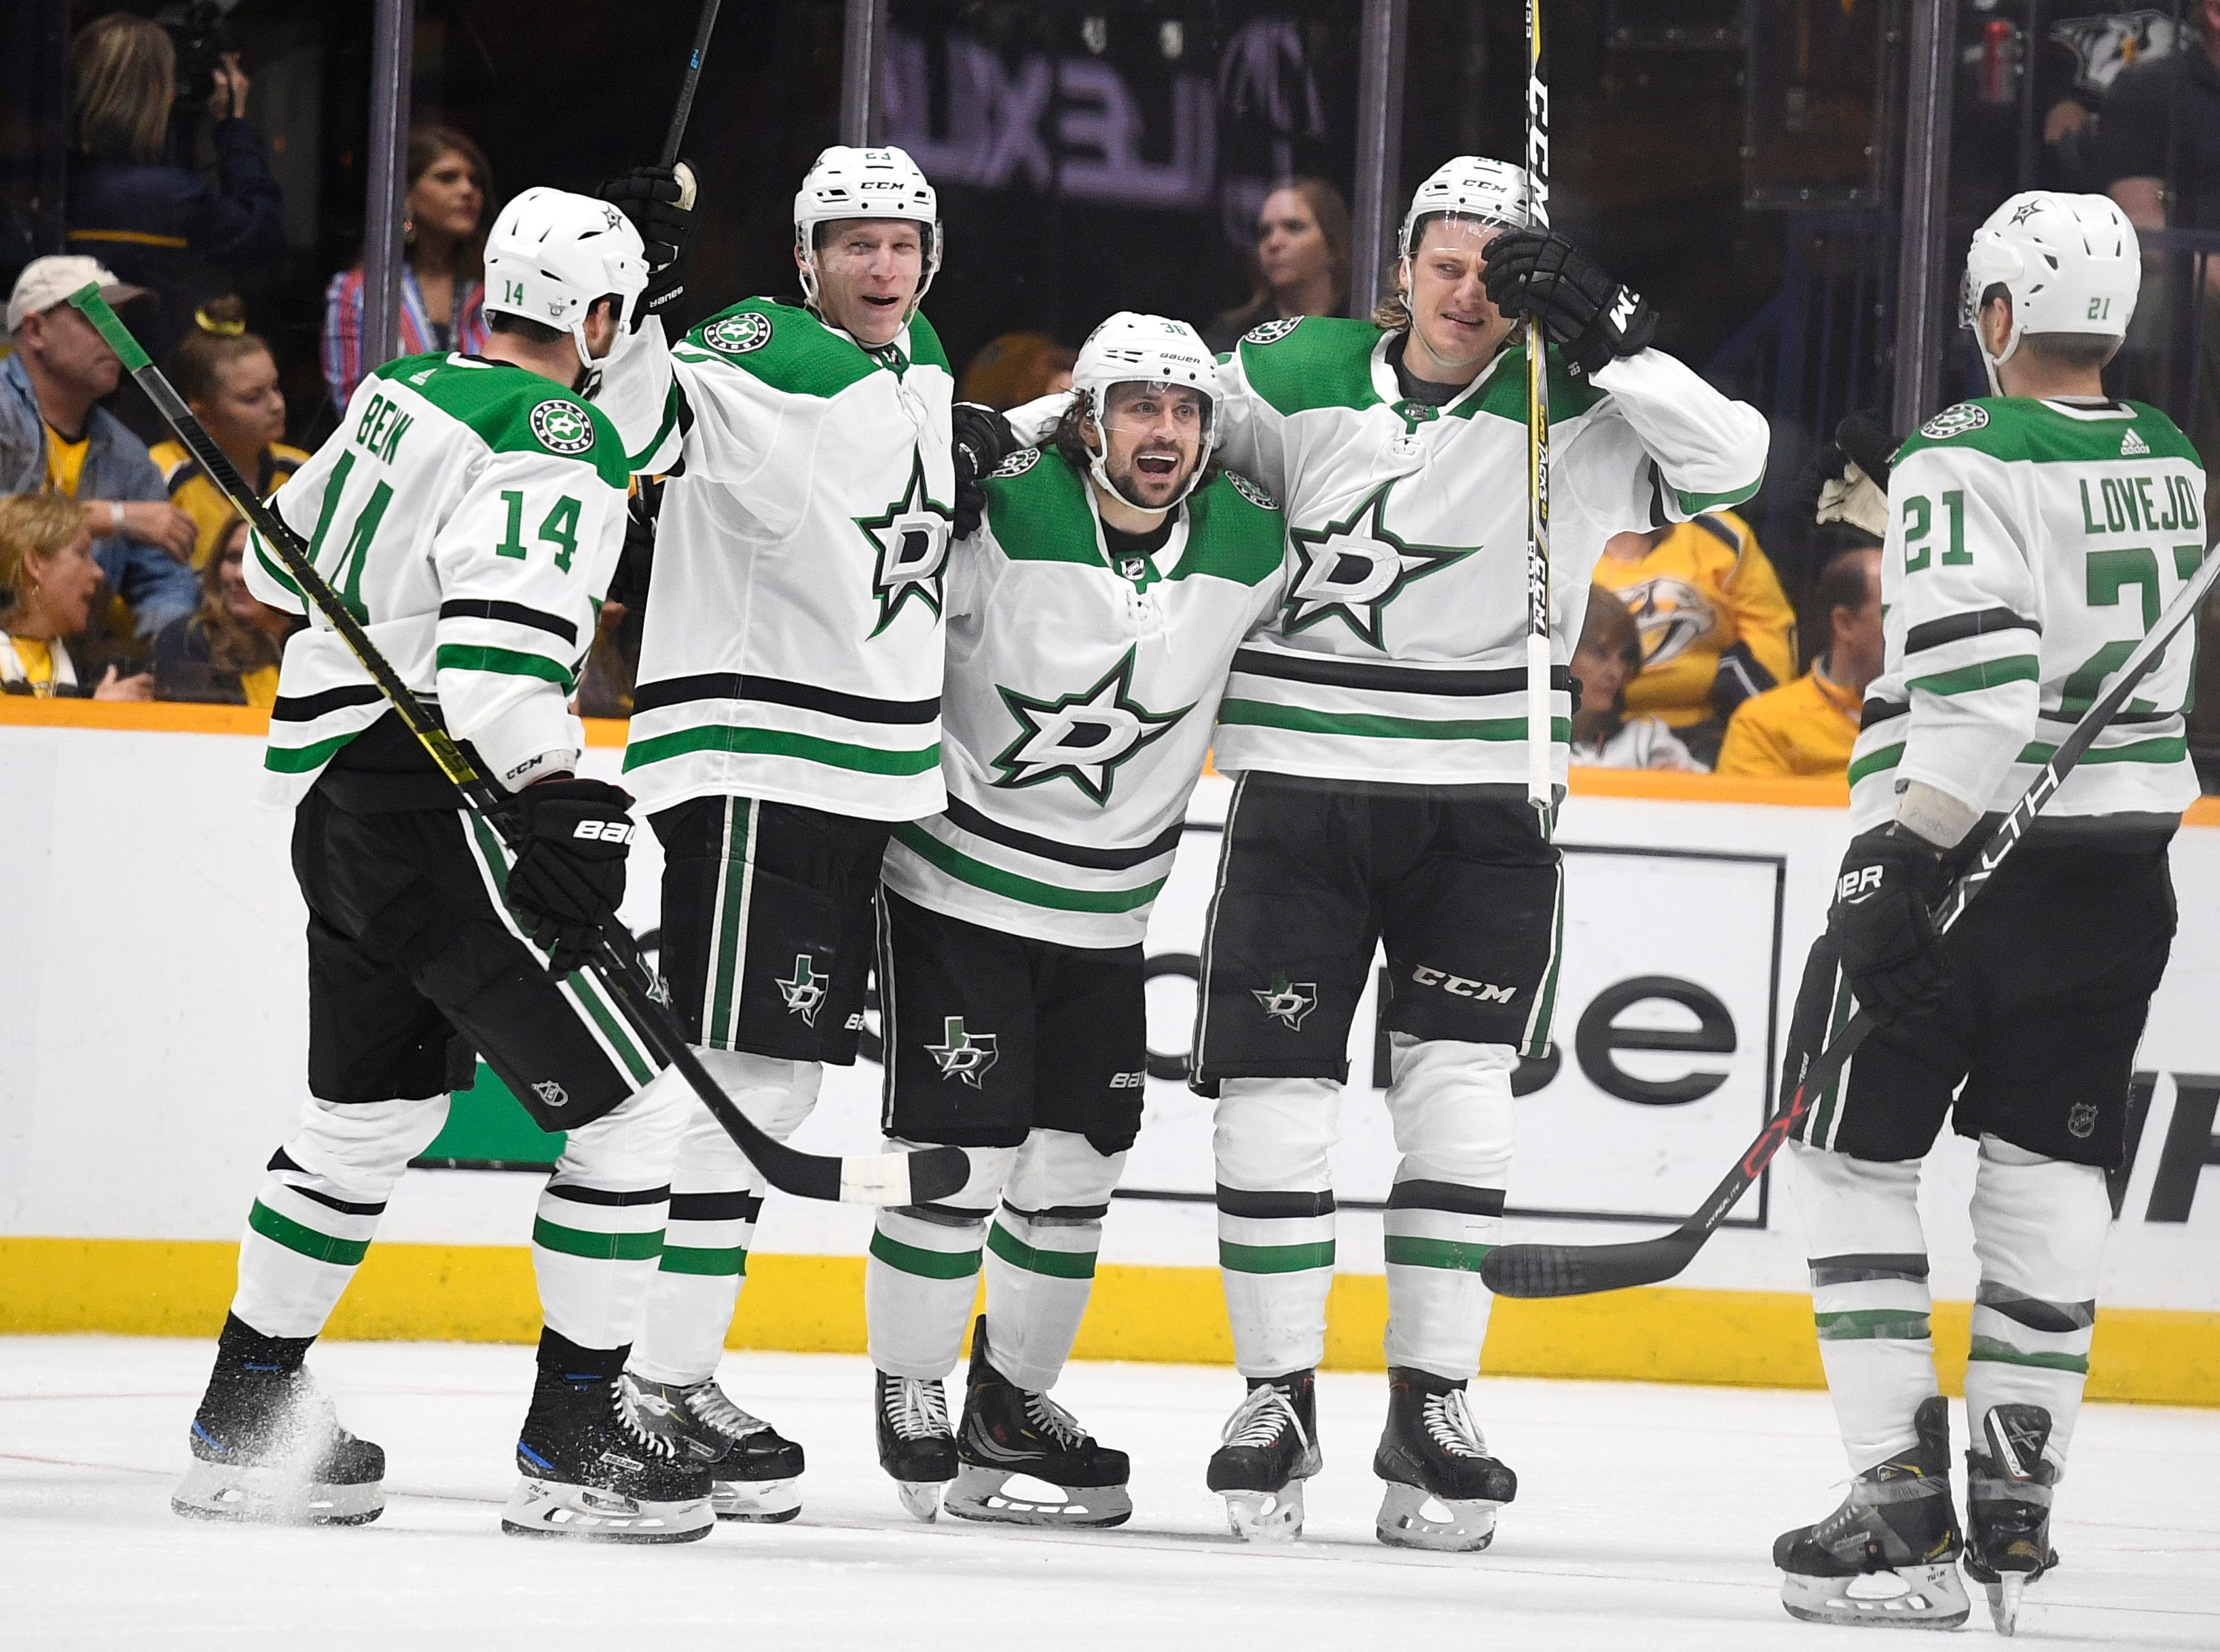 Dallas Stars center Mats Zuccarello (36) celebrates his goal with his teammates during the third period of the divisional semifinal game at Bridgestone Arena in Nashville, Tenn., Wednesday, April 10, 2019.